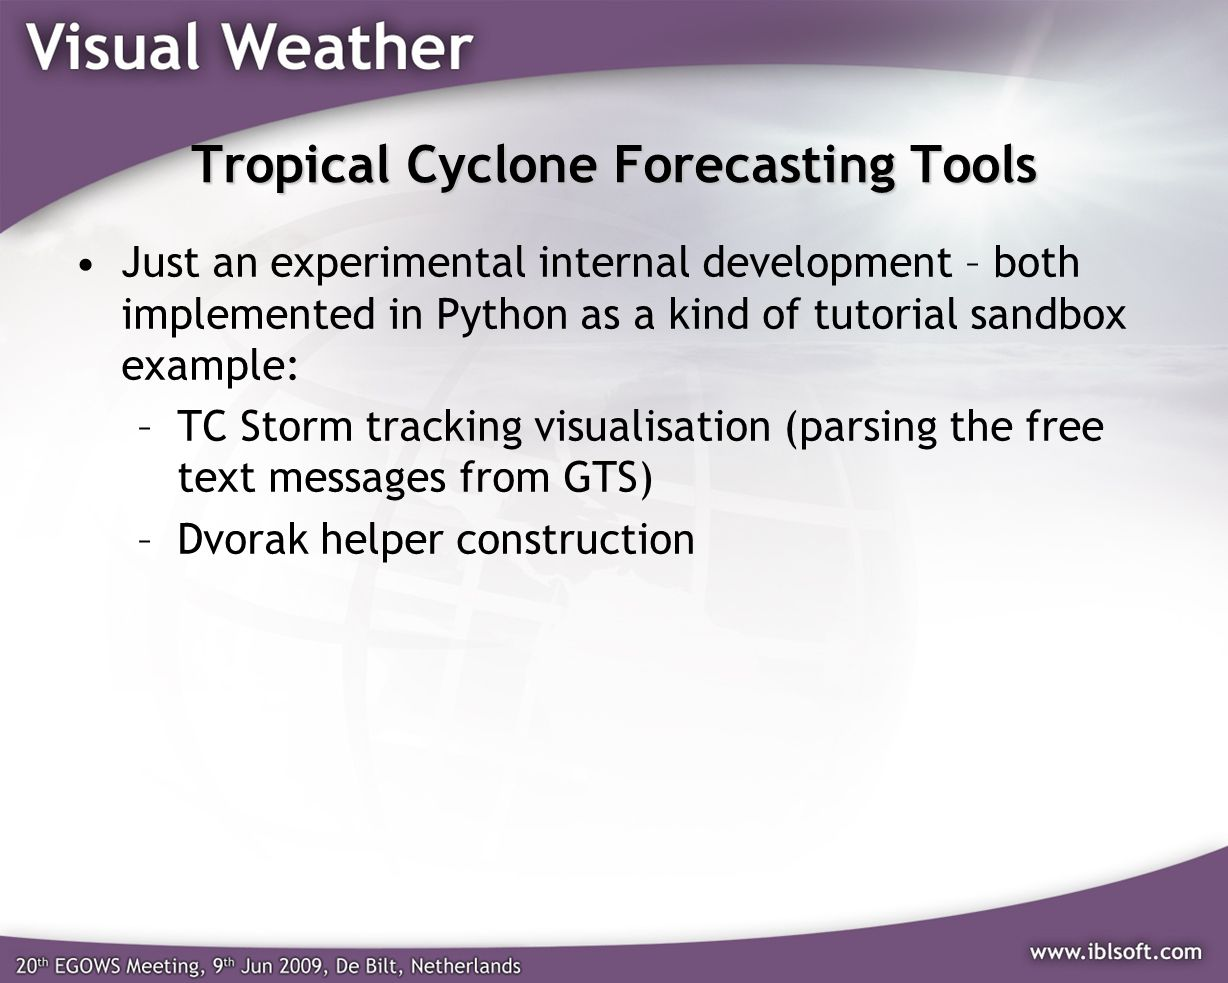 Tropical Cyclone Forecasting Tools